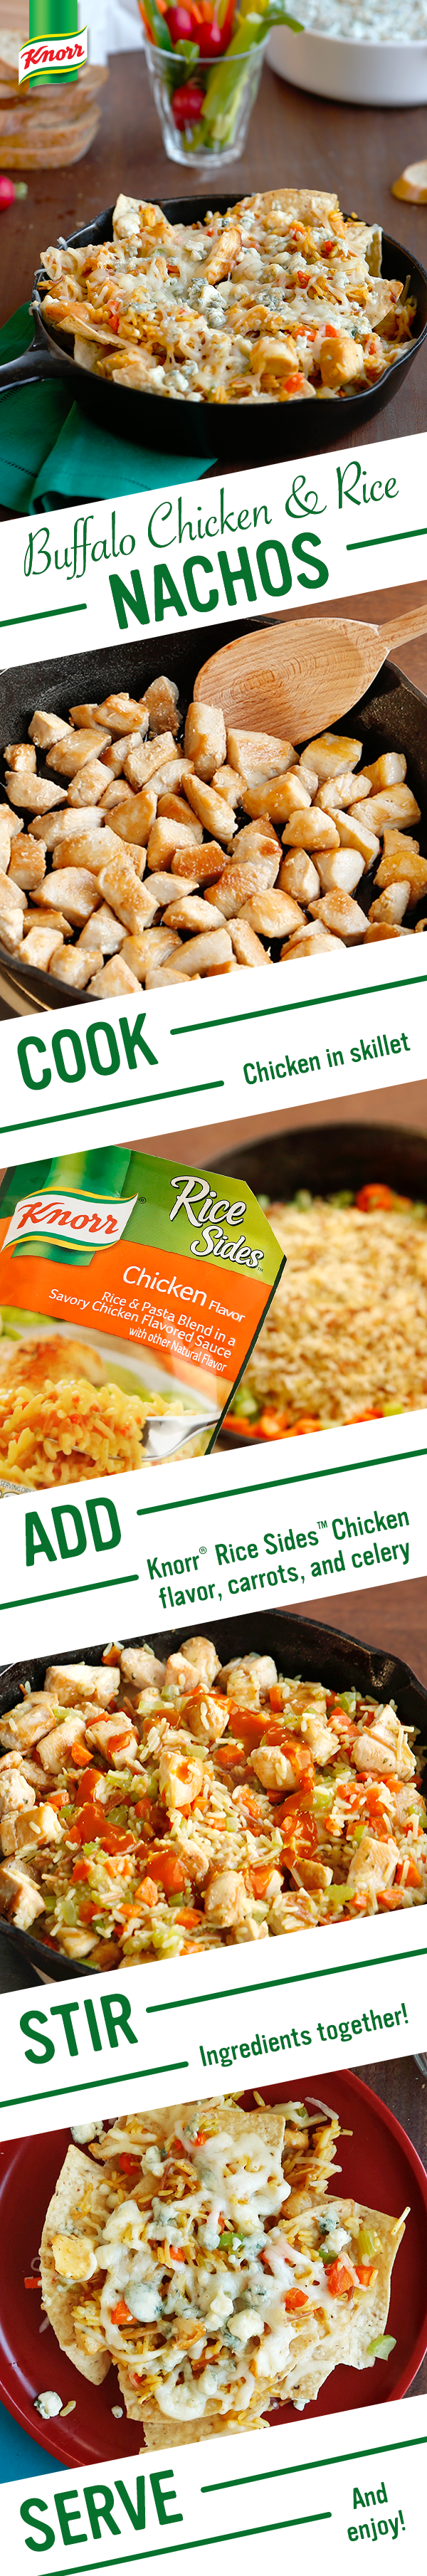 Knorr S Buffalo Chicken Amp Rice Nachos Are The Perfect Game